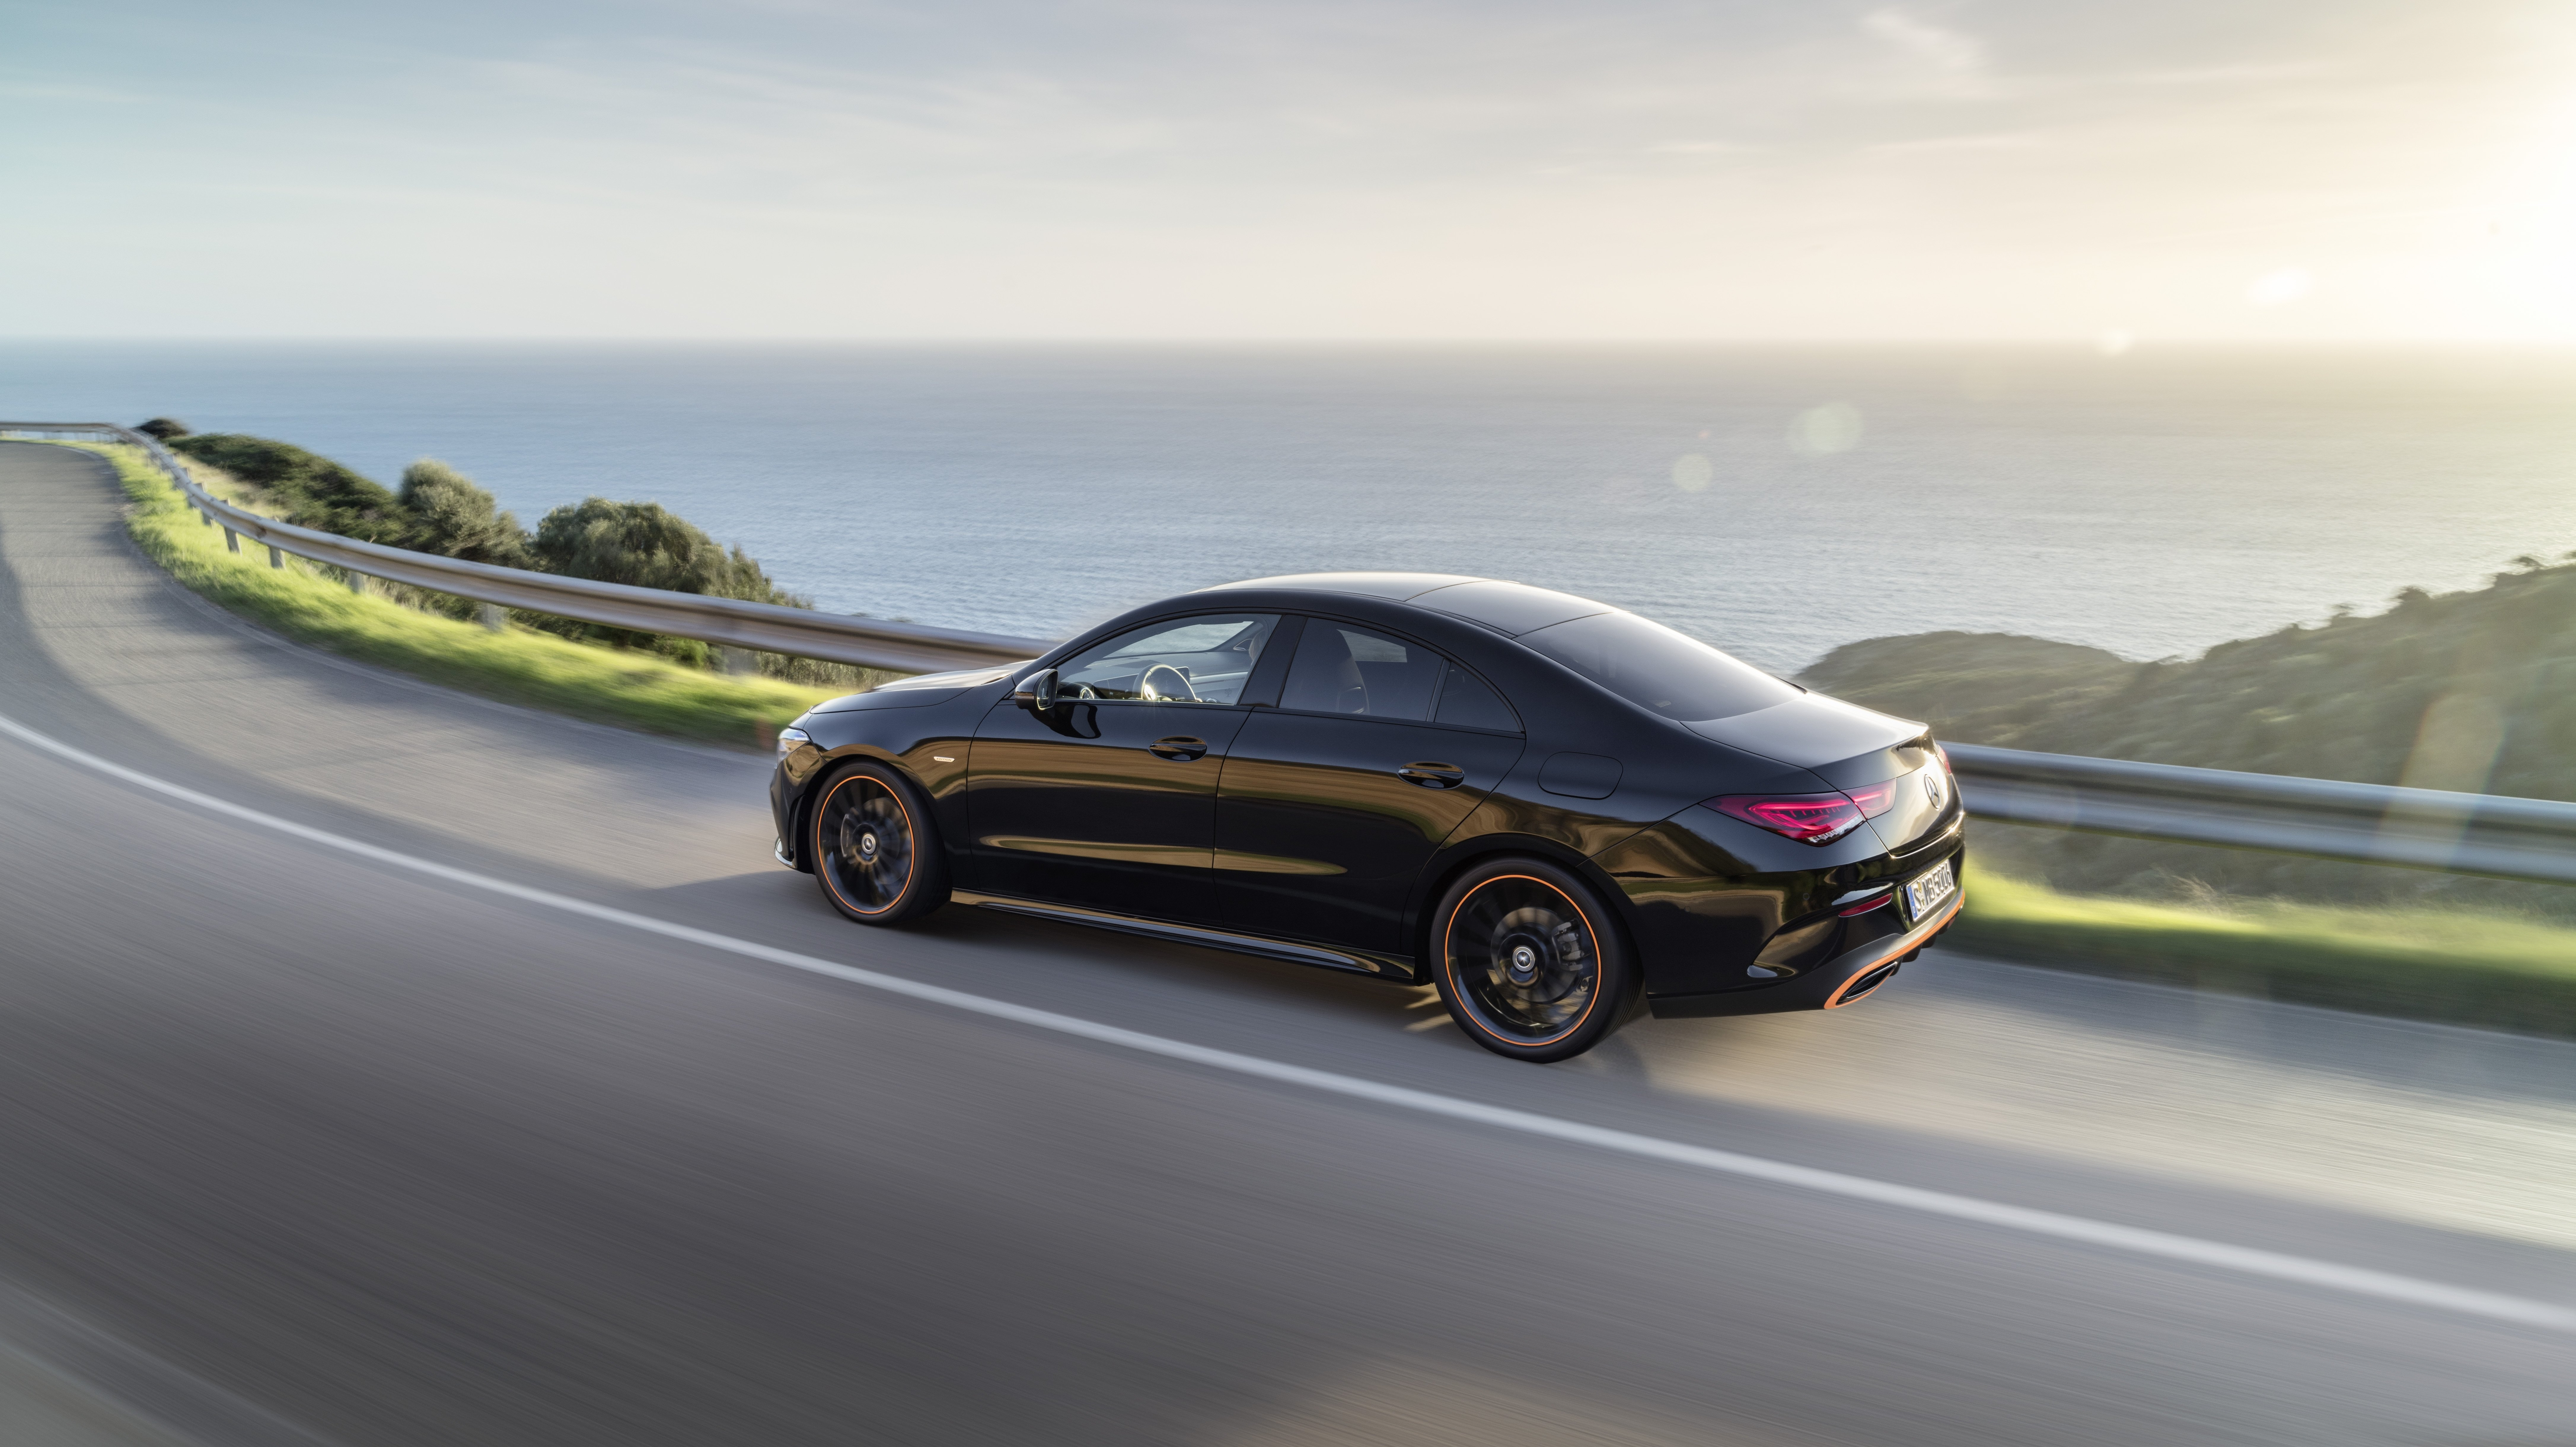 d73b56cf After a rather cheesy debut of the new 2020 Mercedes CLA at the CES in Las  Vegas that included a cringy discussion between a talking EQ C and a  talking CLA, ...